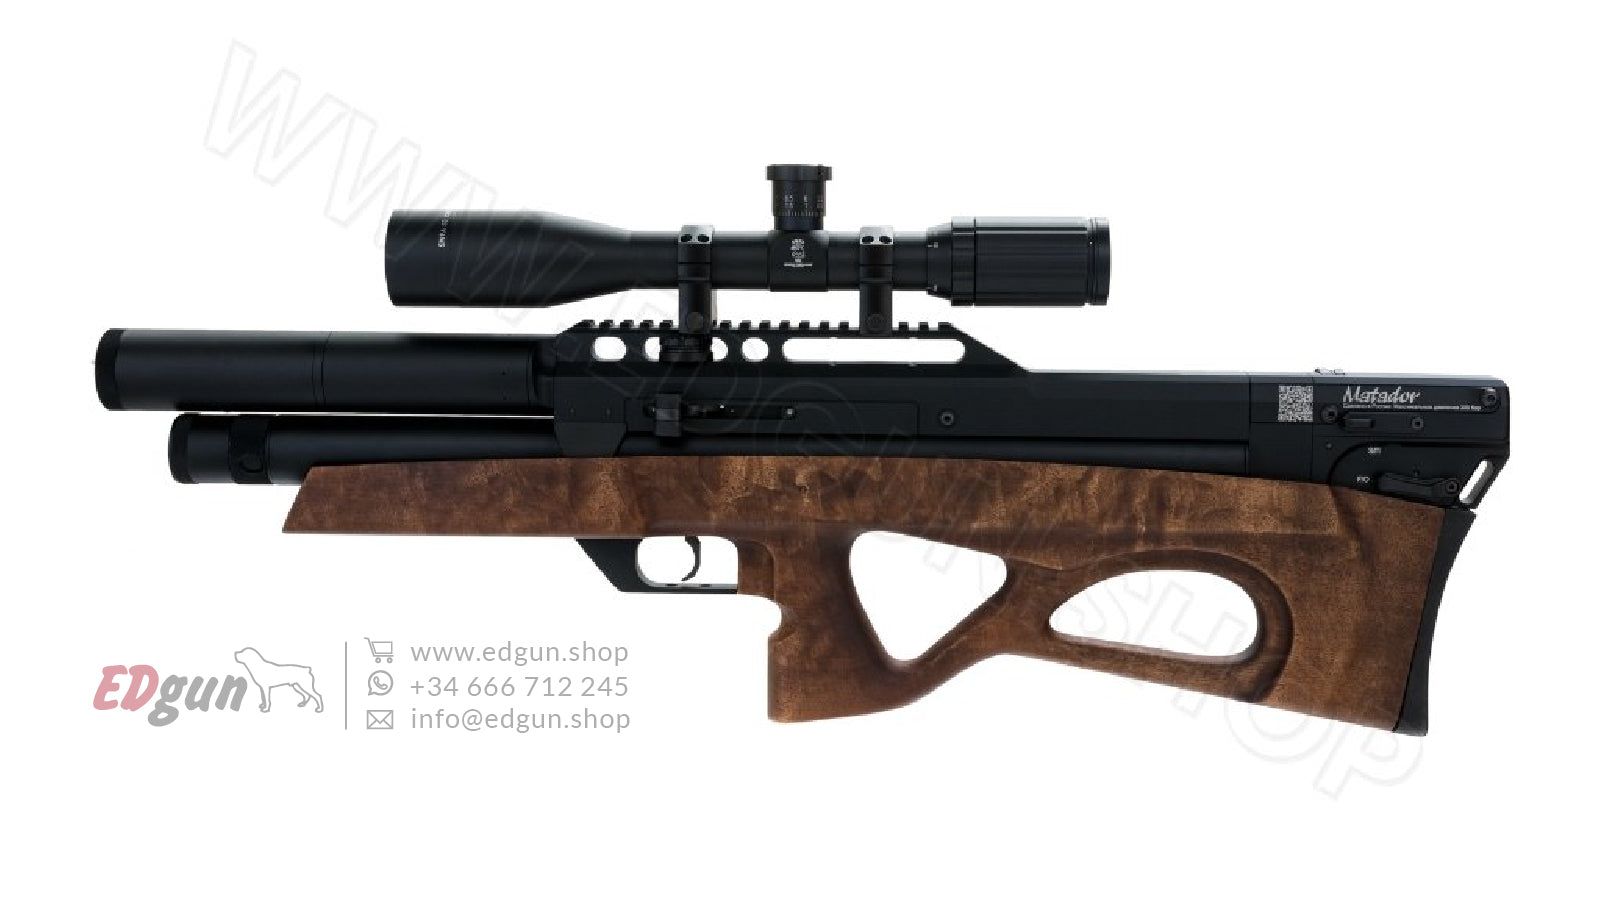 EDgun Matador R5M <br> Technical service